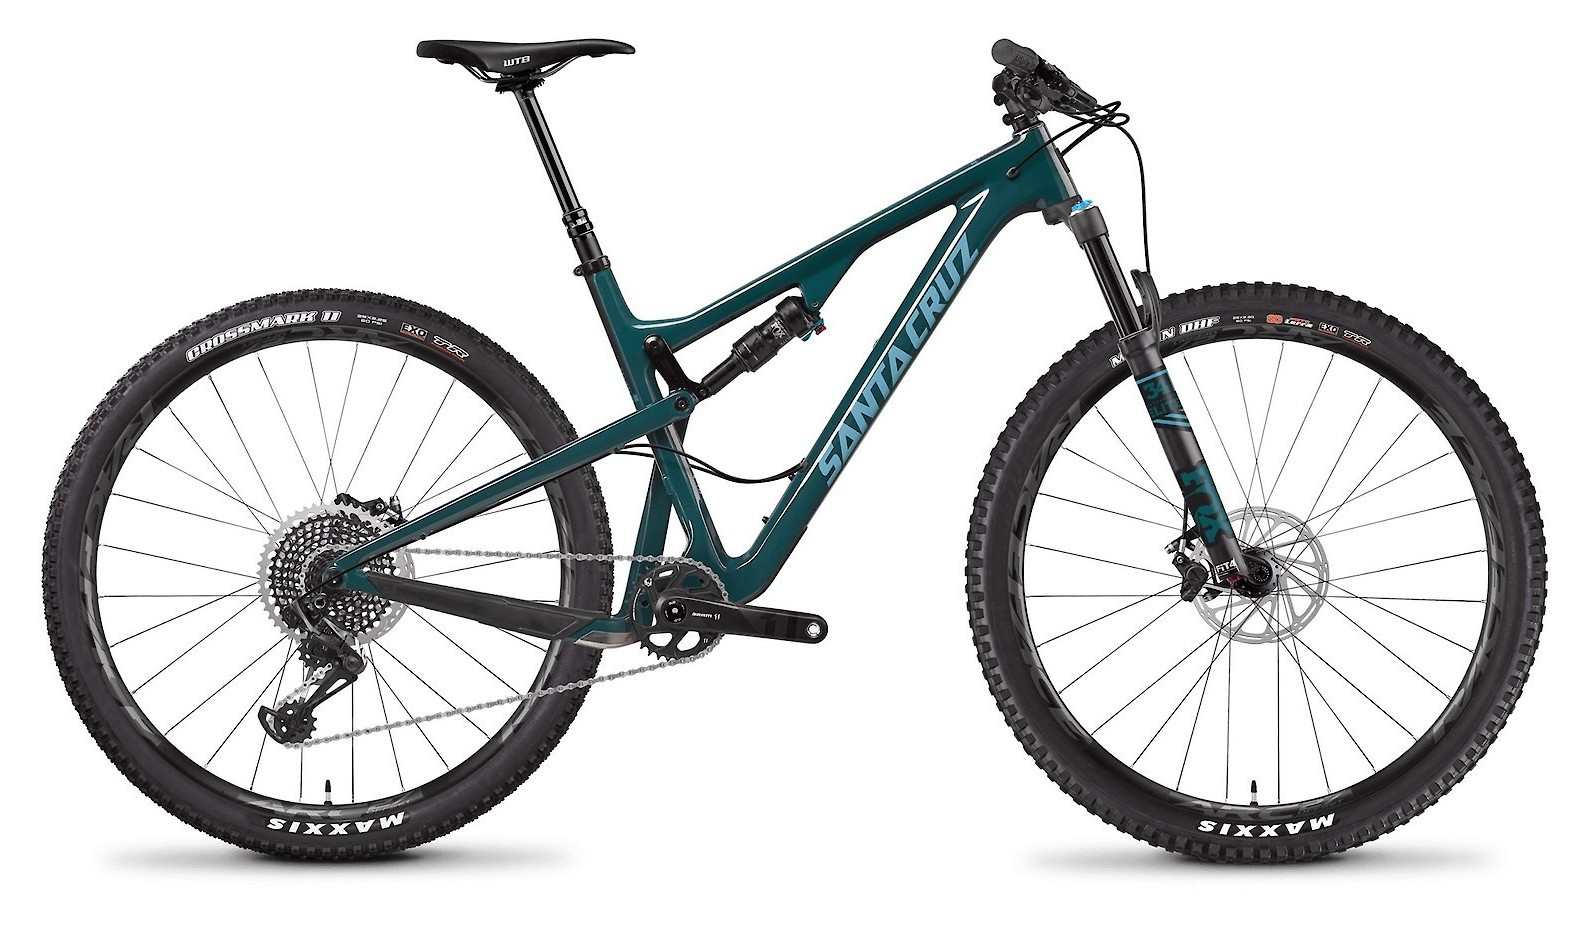 Tallboy Carbon CC Forest Green and Baby Blue